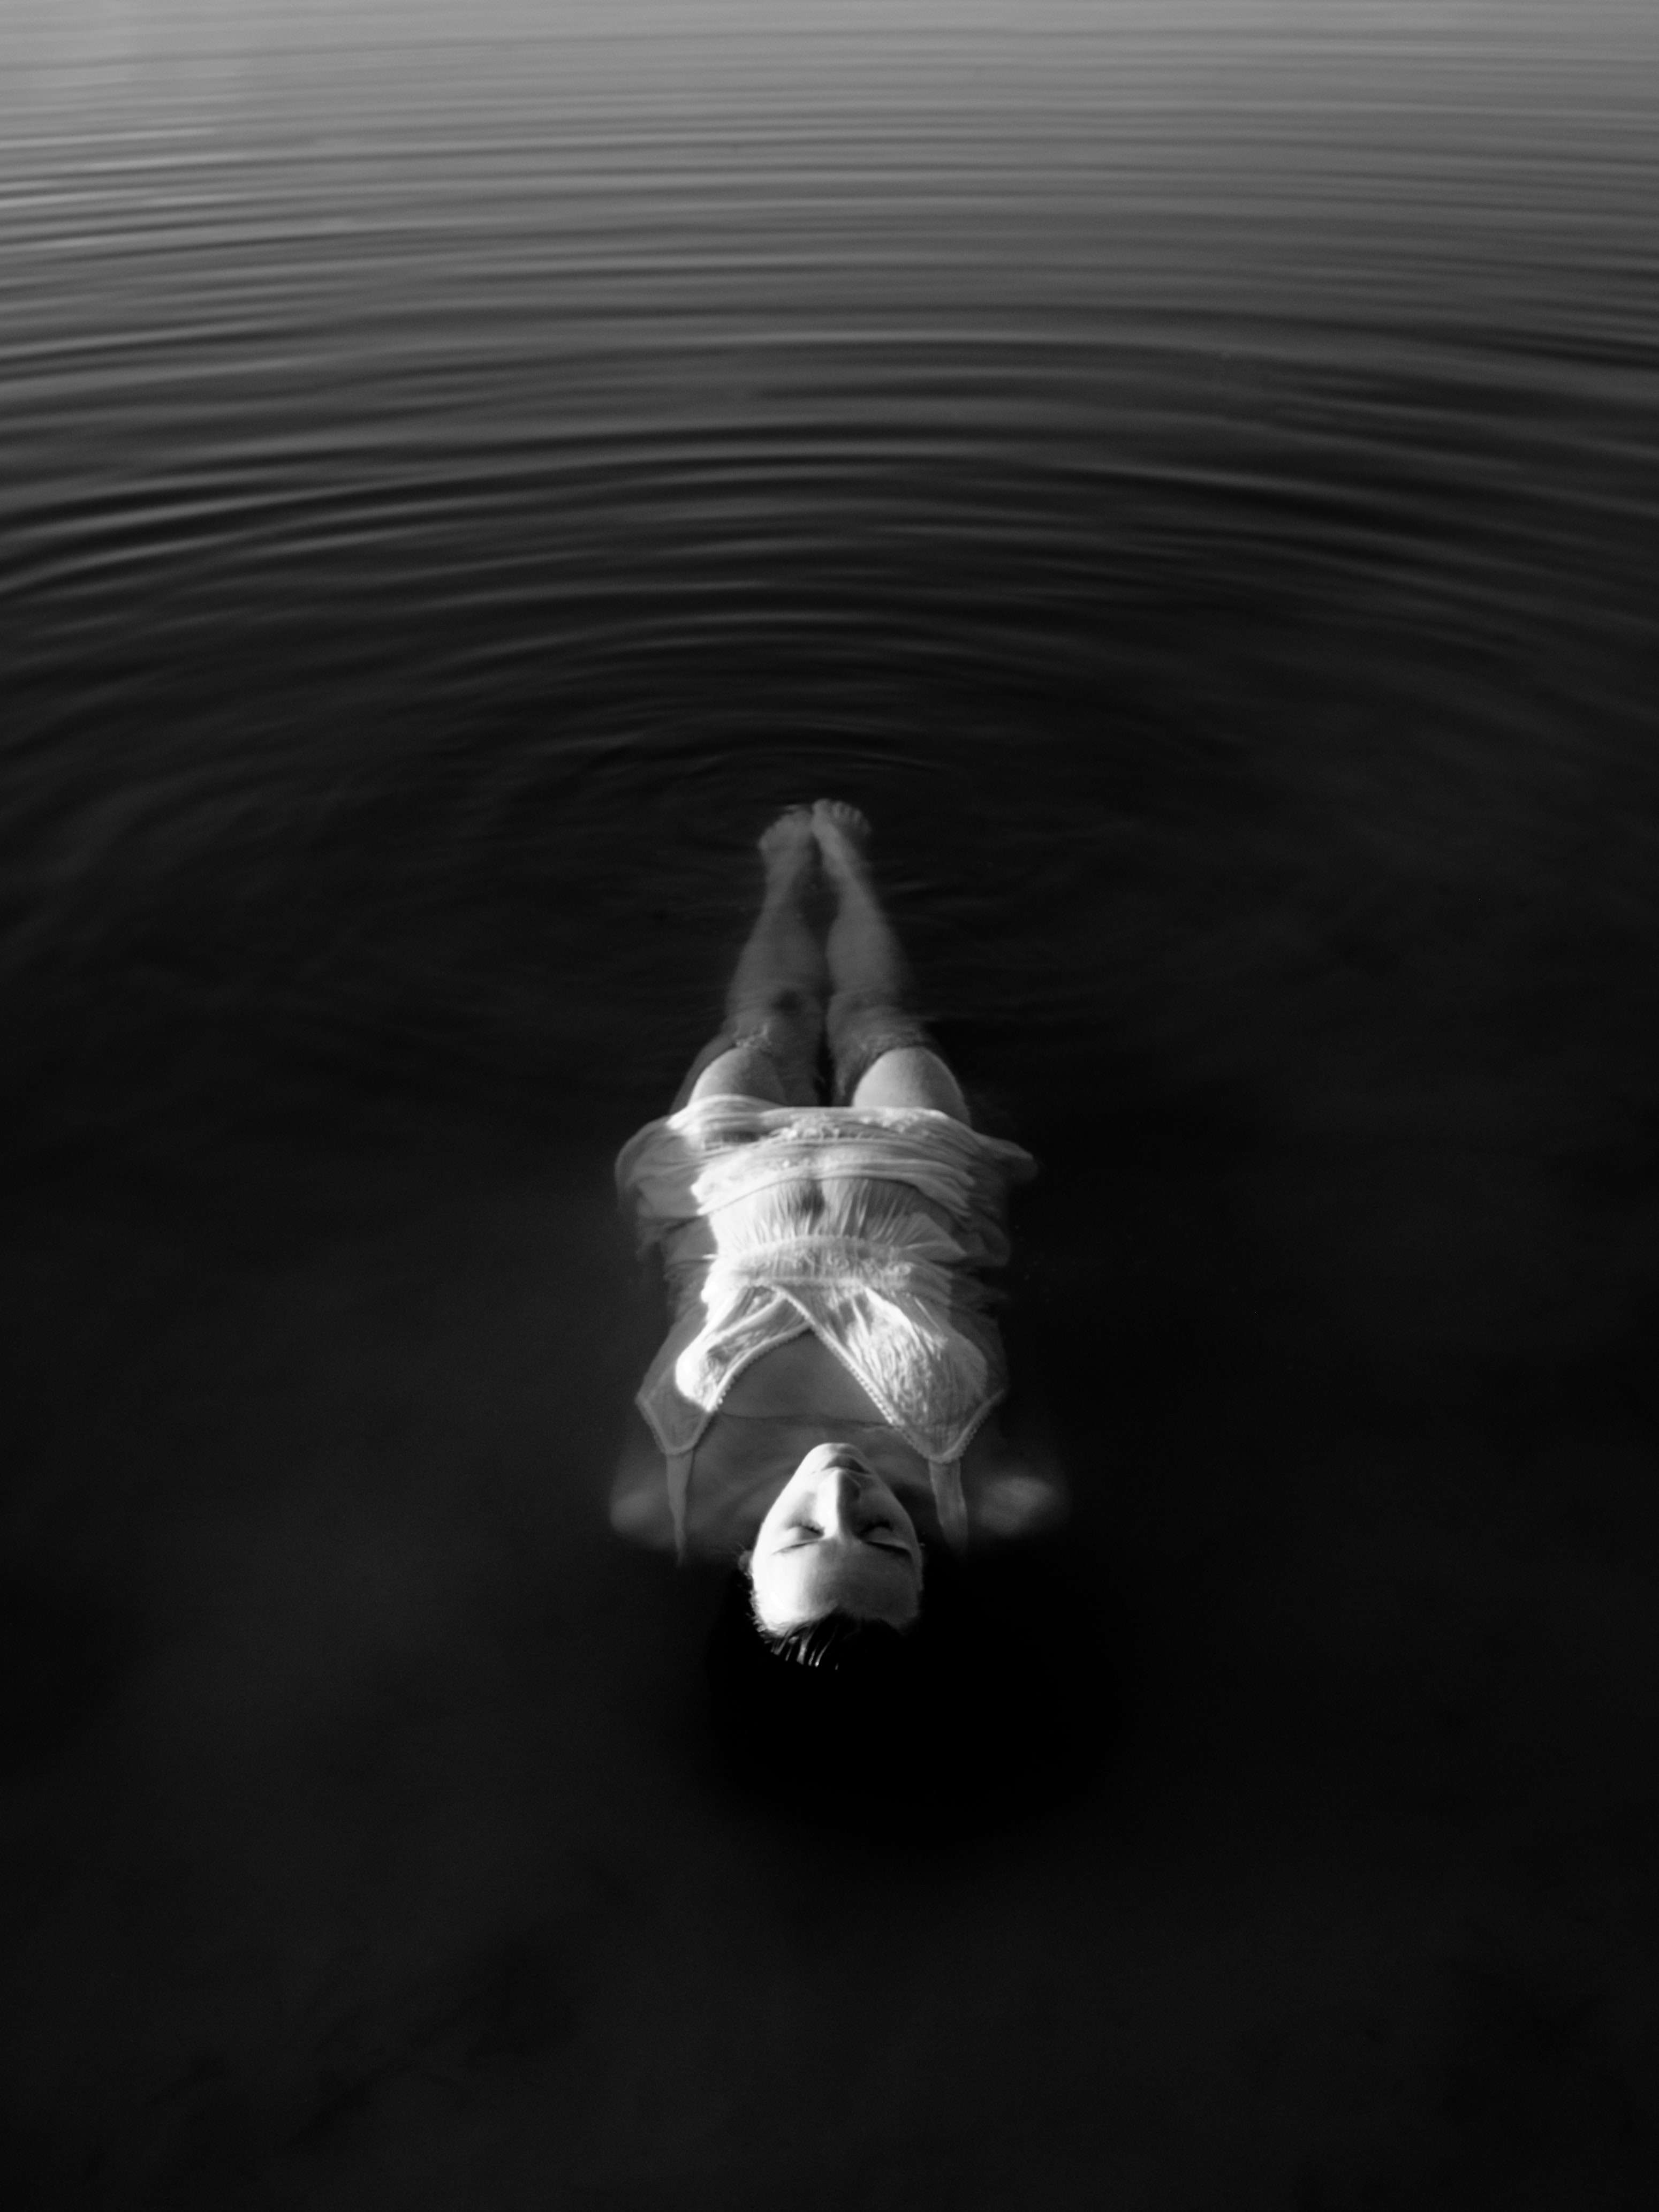 Black and white shot of woman floating in water with ripples in Wassenaar, Zuid-Holland, Nederland